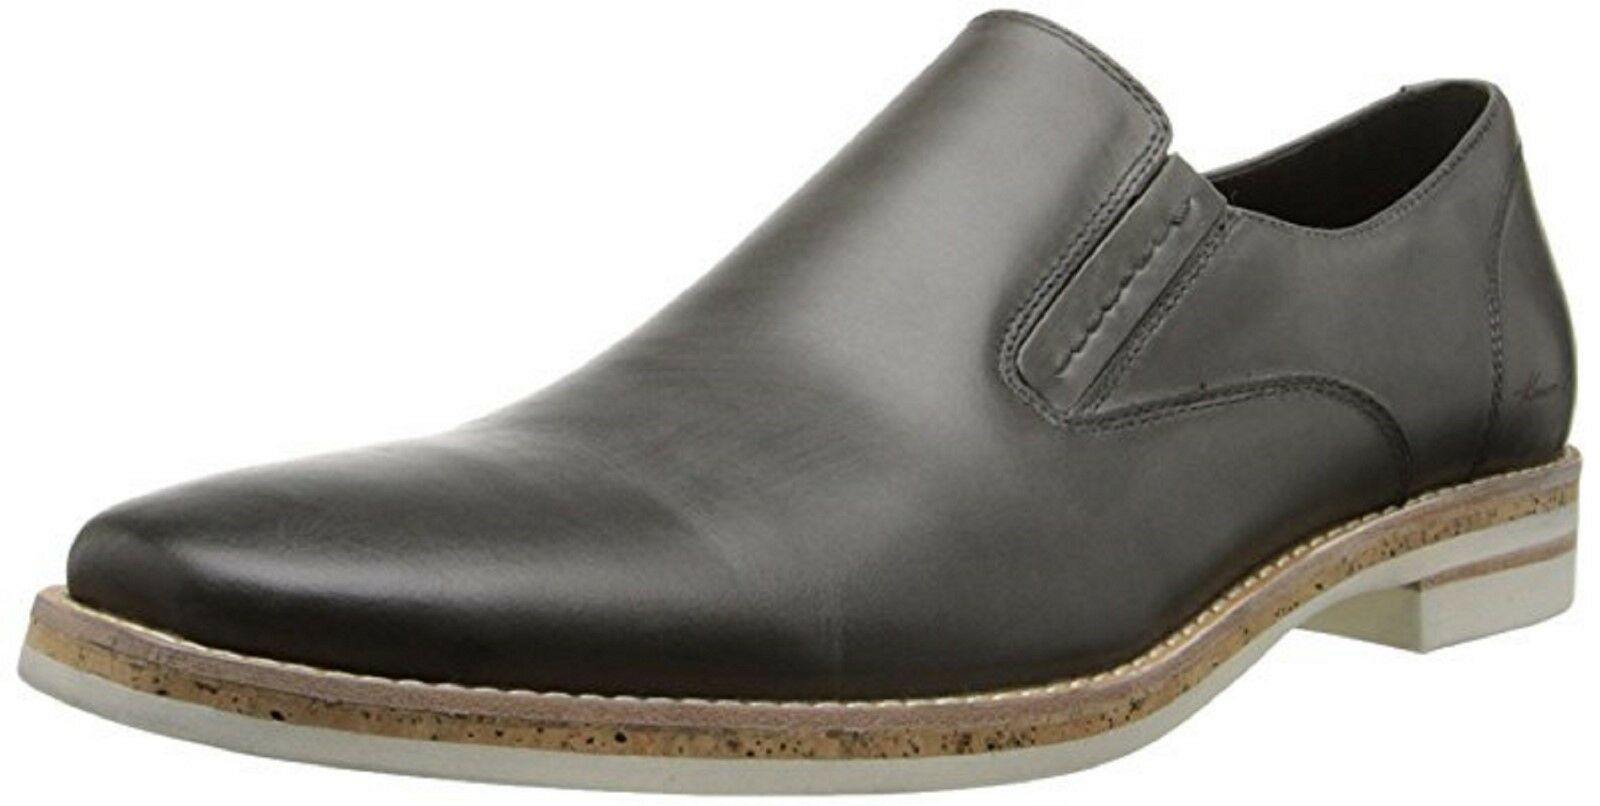 Kenneth Cole Men's Pop The Cork Slip On Loafers Grey Leather 8.5 NEW IN BOX